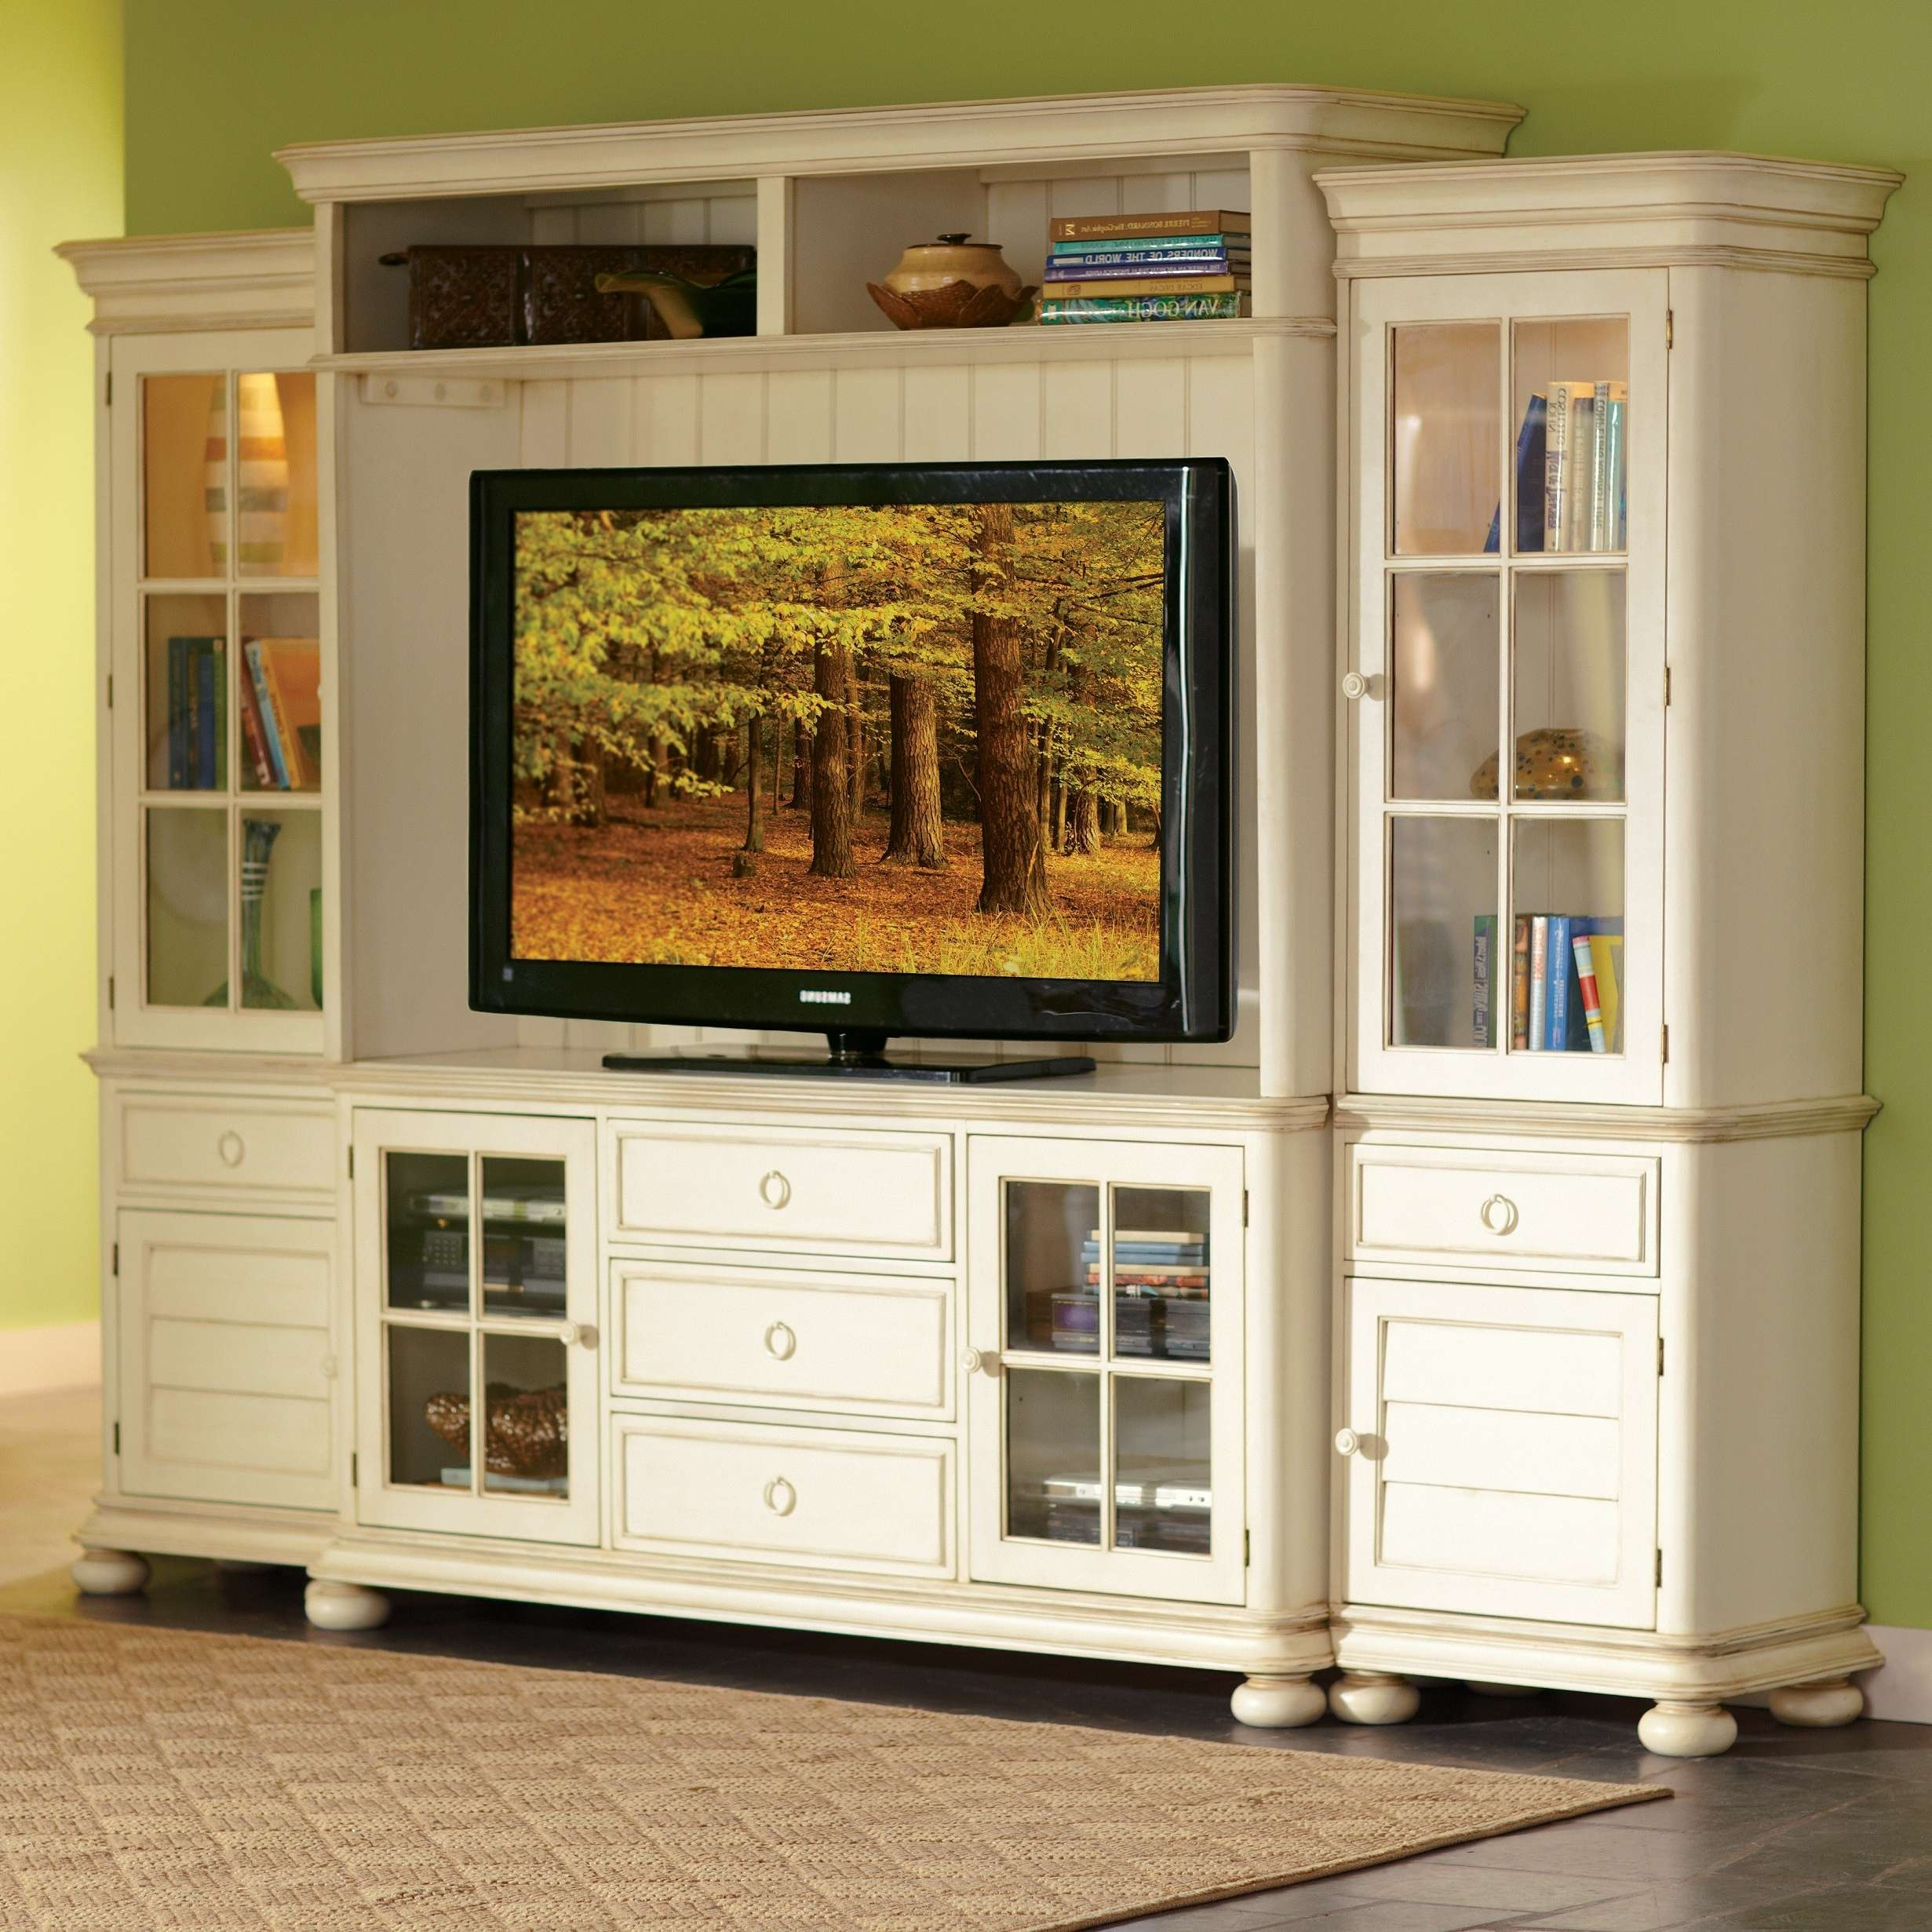 Explore Photos Of Corner Tv Cabinets With Glass Doors Showing 15 Of